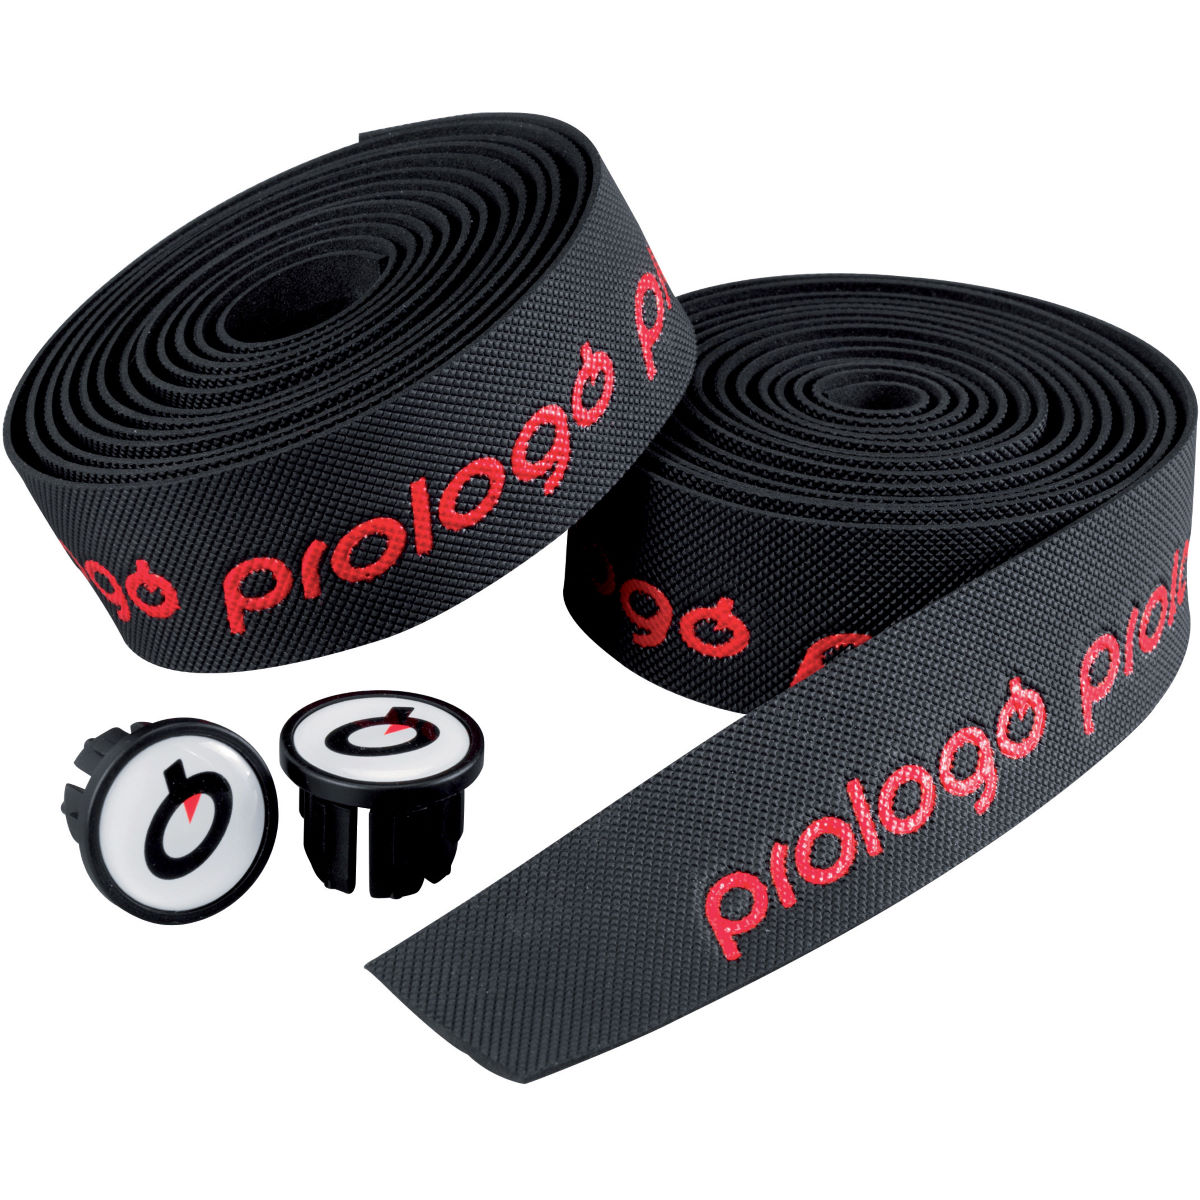 Prologo Onetouch Handlebar Tape - One Size Black/red  Bar Tape